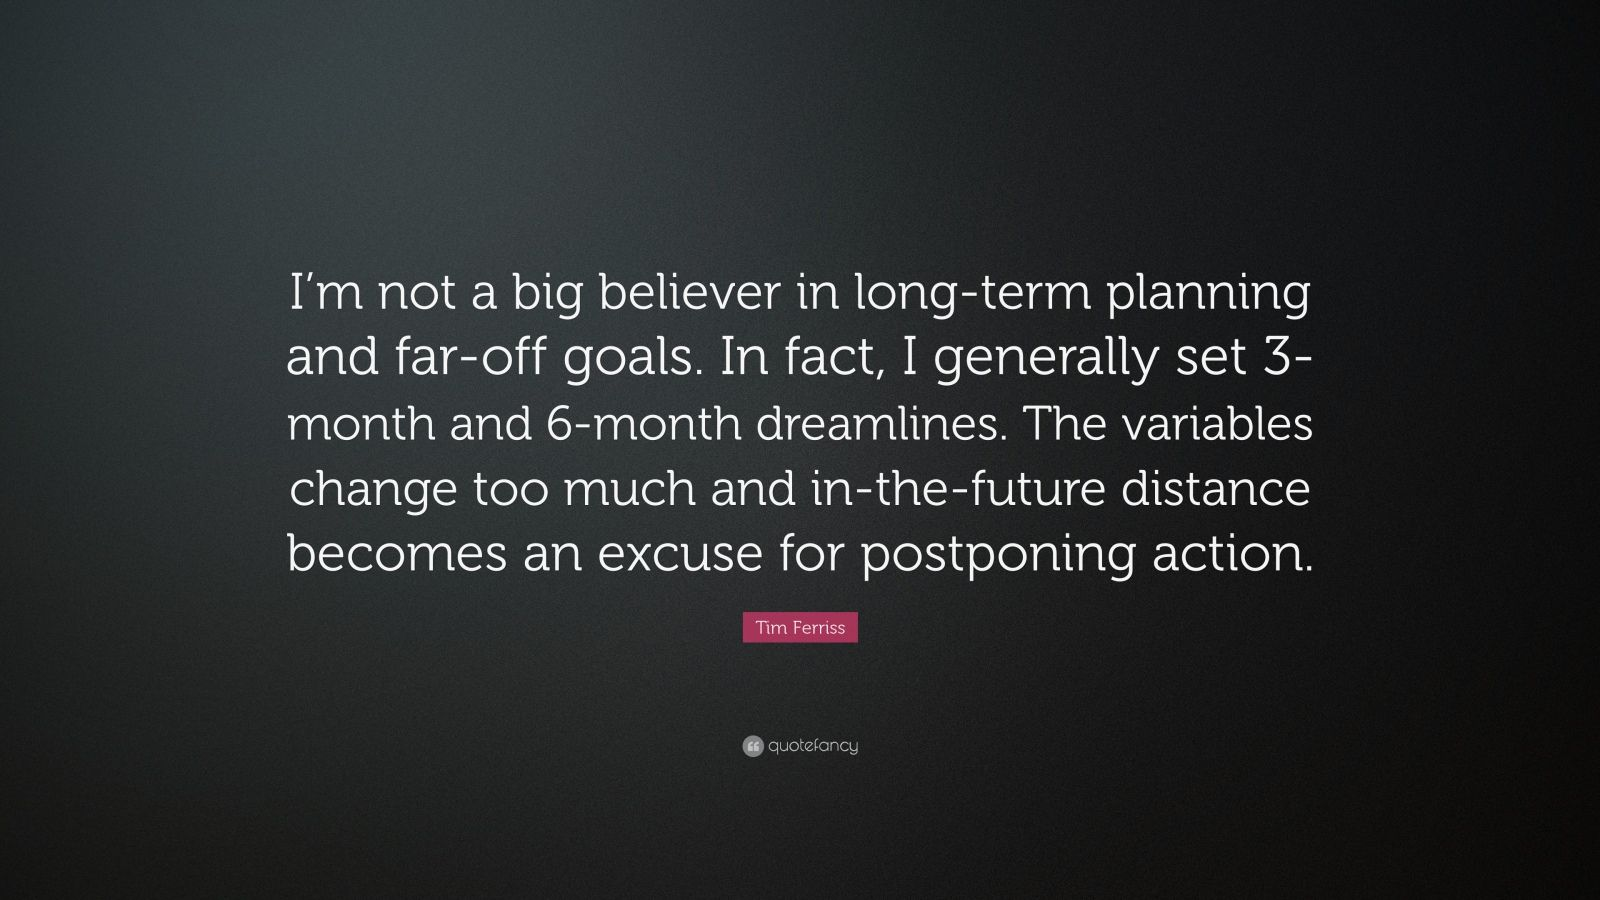 "Tim Ferriss Quote: ""I'm not a big believer in long-term planning and far-off goals. In fact, I generally set 3-month and 6-month dreamlines. The variables change too much and in-the-future distance becomes an excuse for postponing action."""